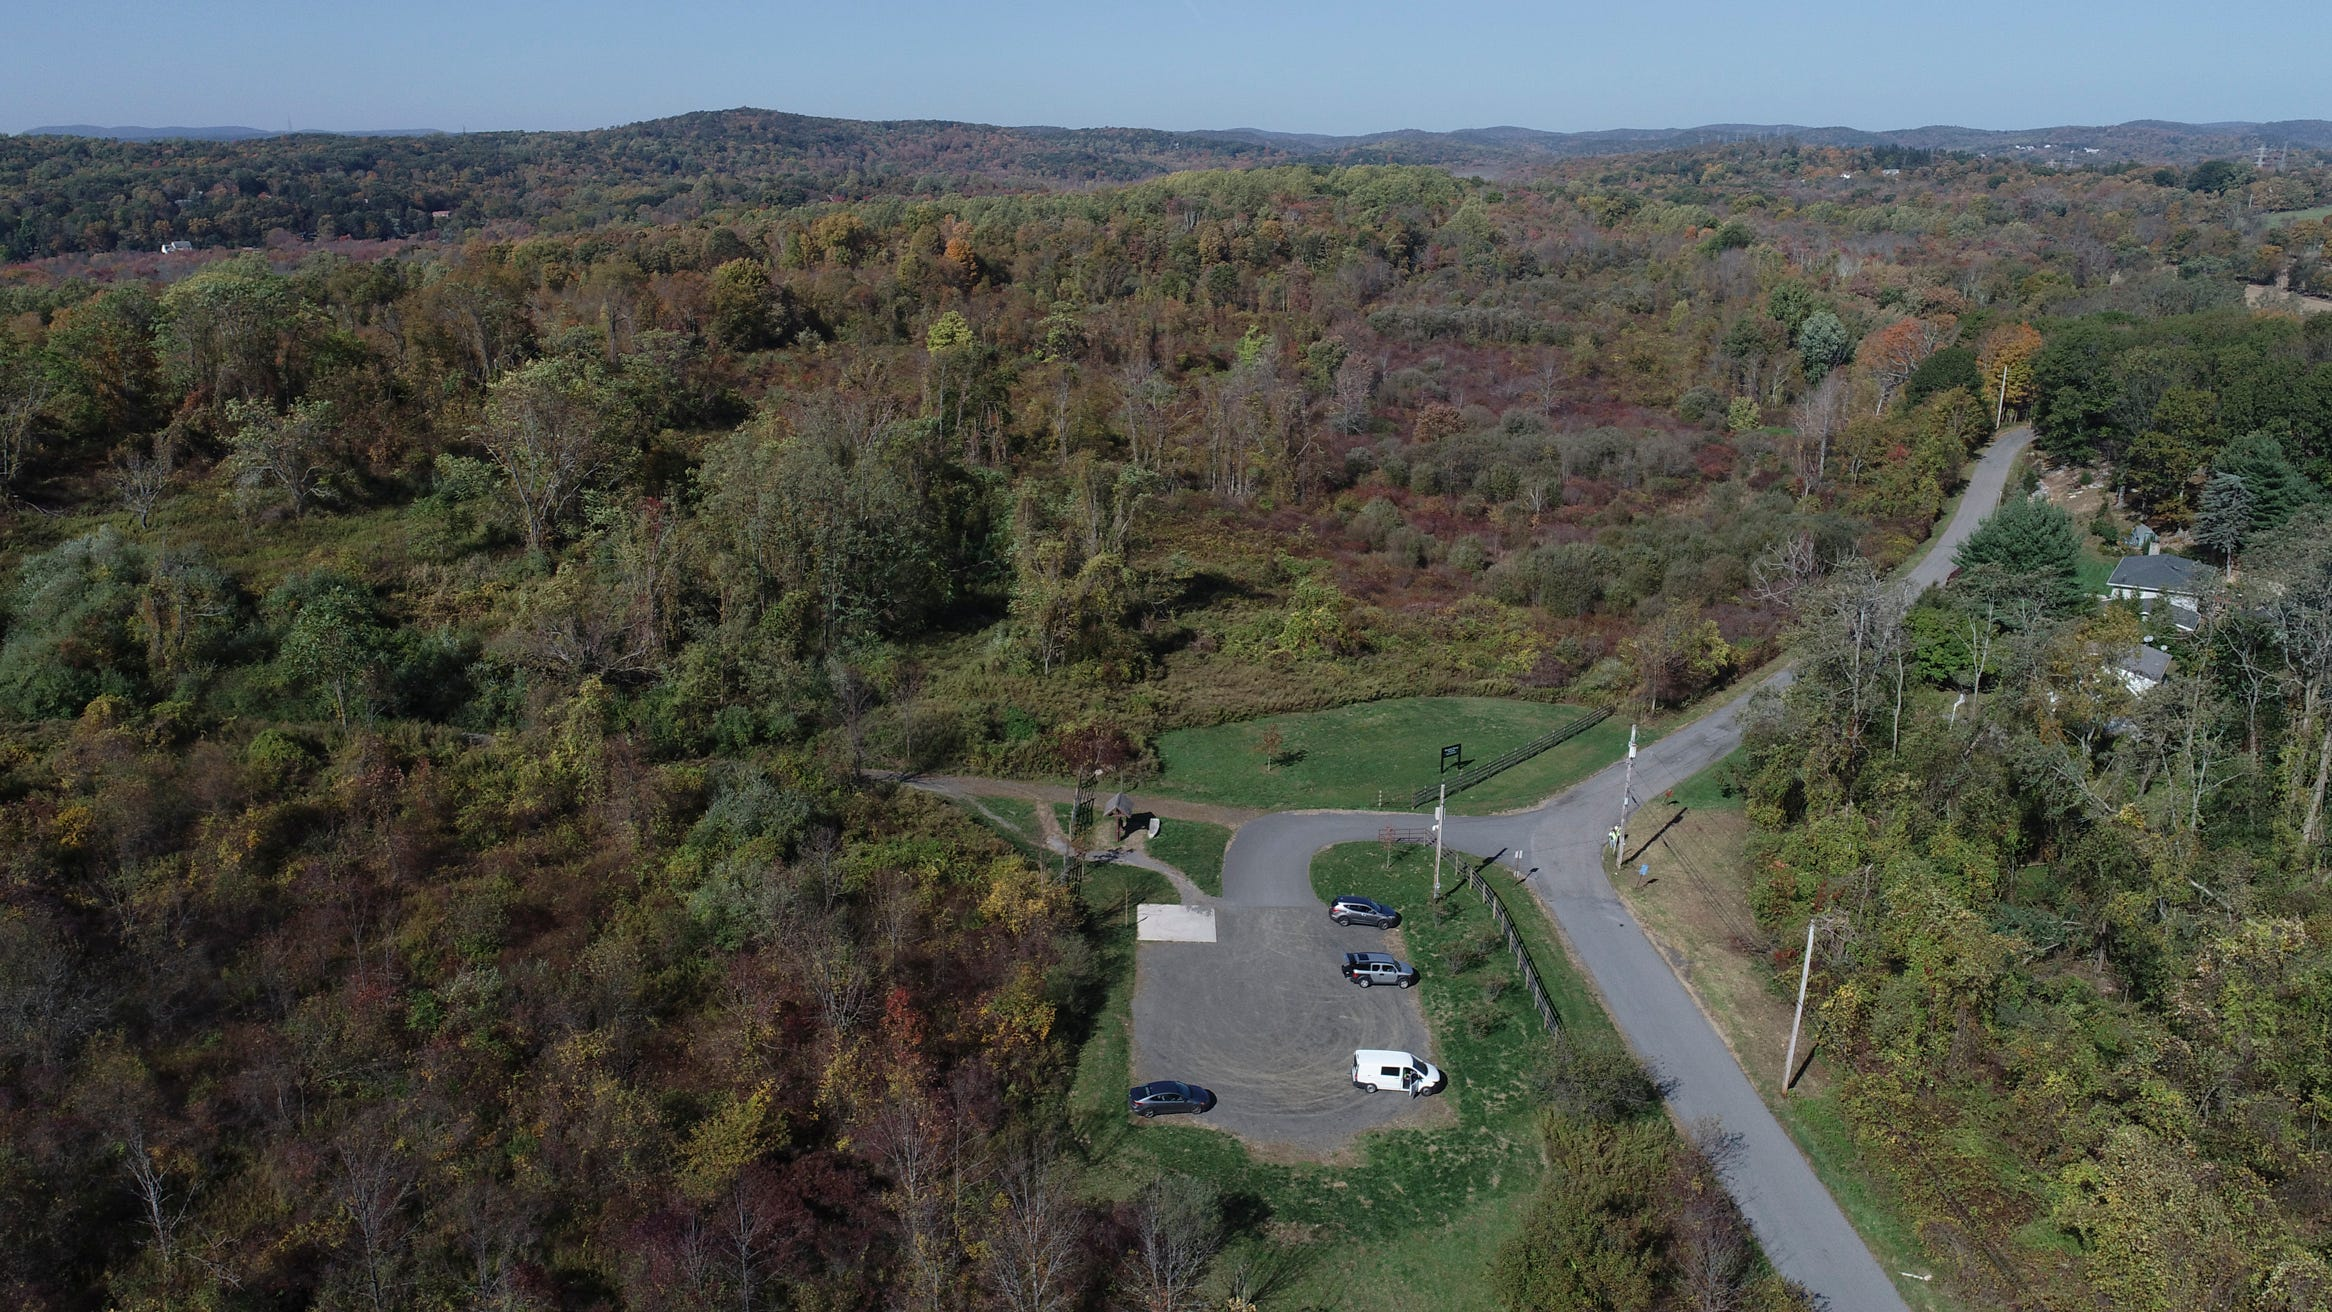 Drone image of the Donald J. Trump State Park in Putnam Valley on Thursday, October 15, 2020.